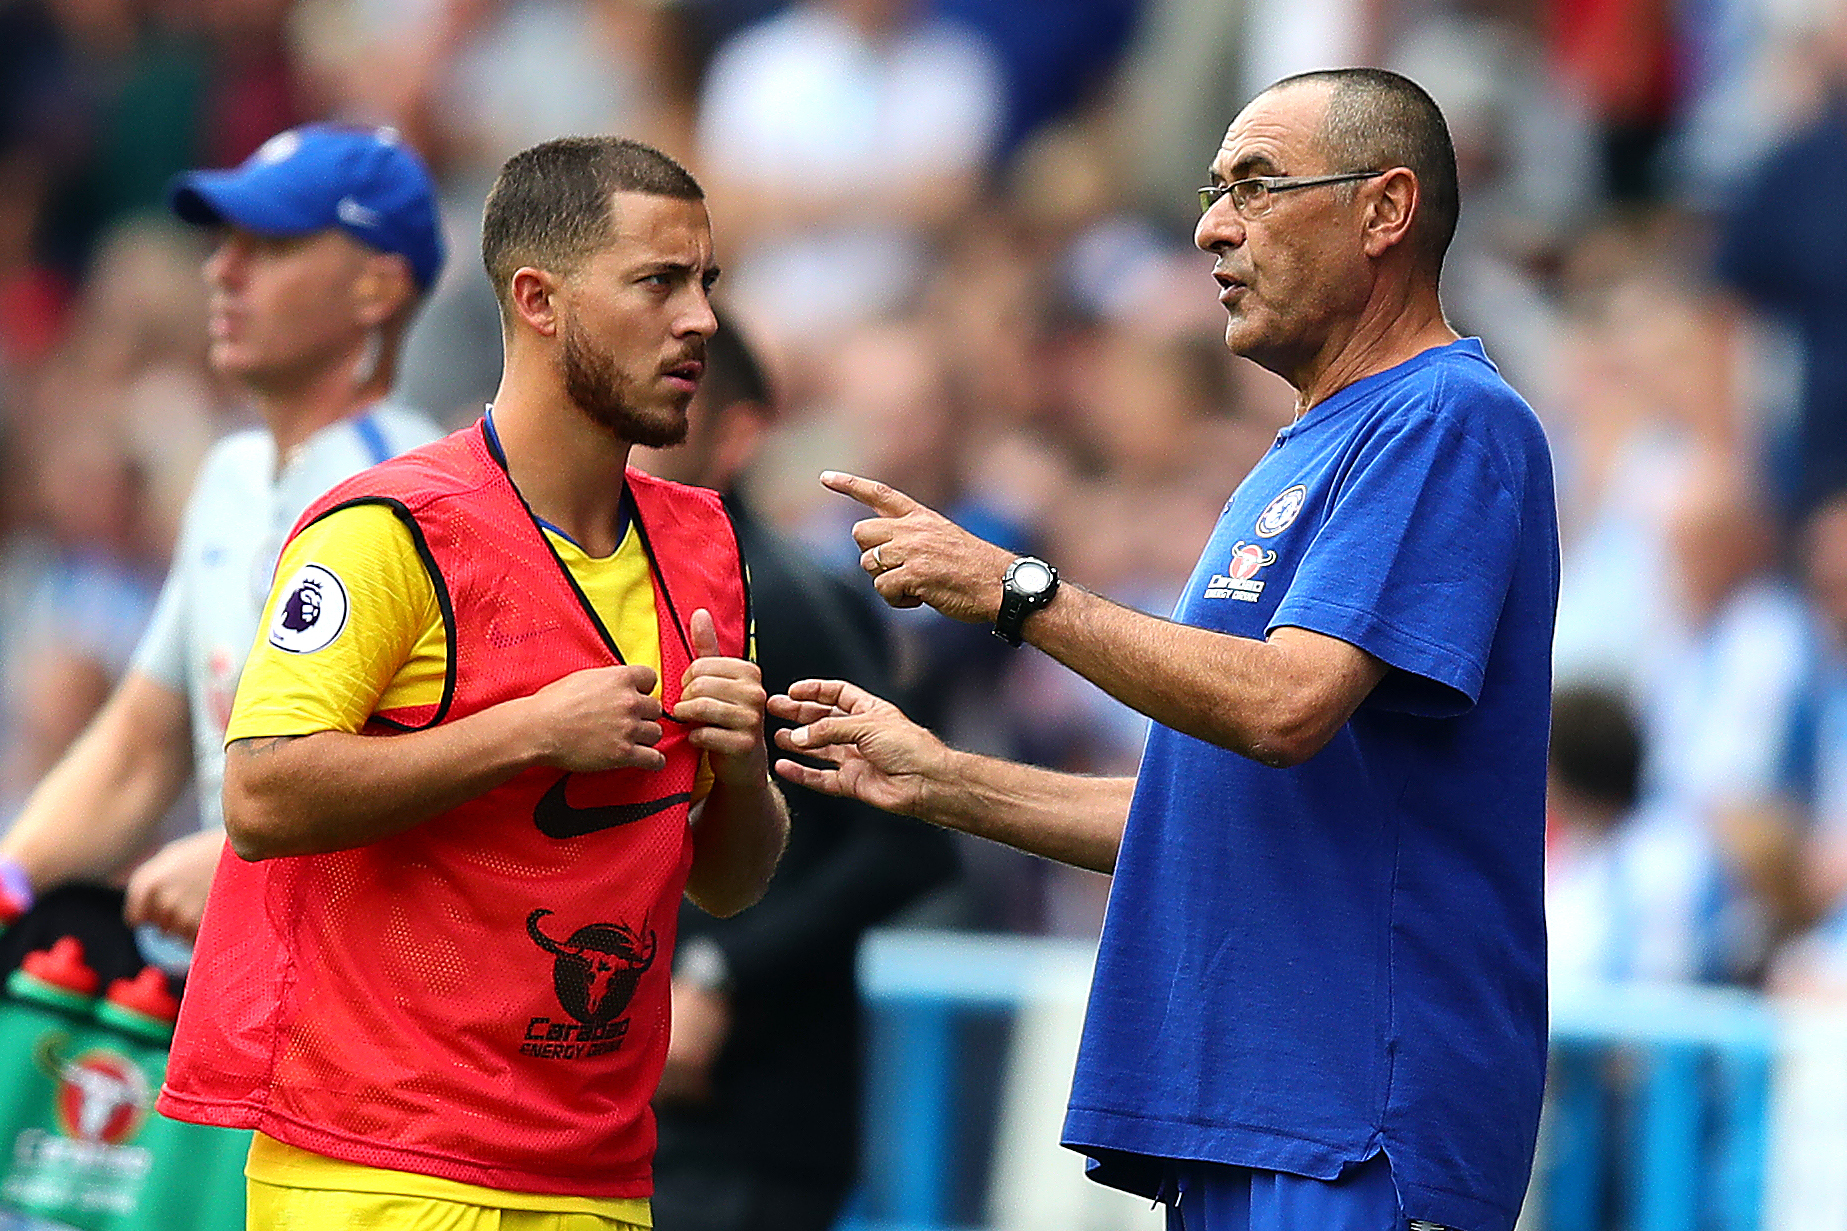 Maurizio Sarri is now getting the best out of Eden Hazard again